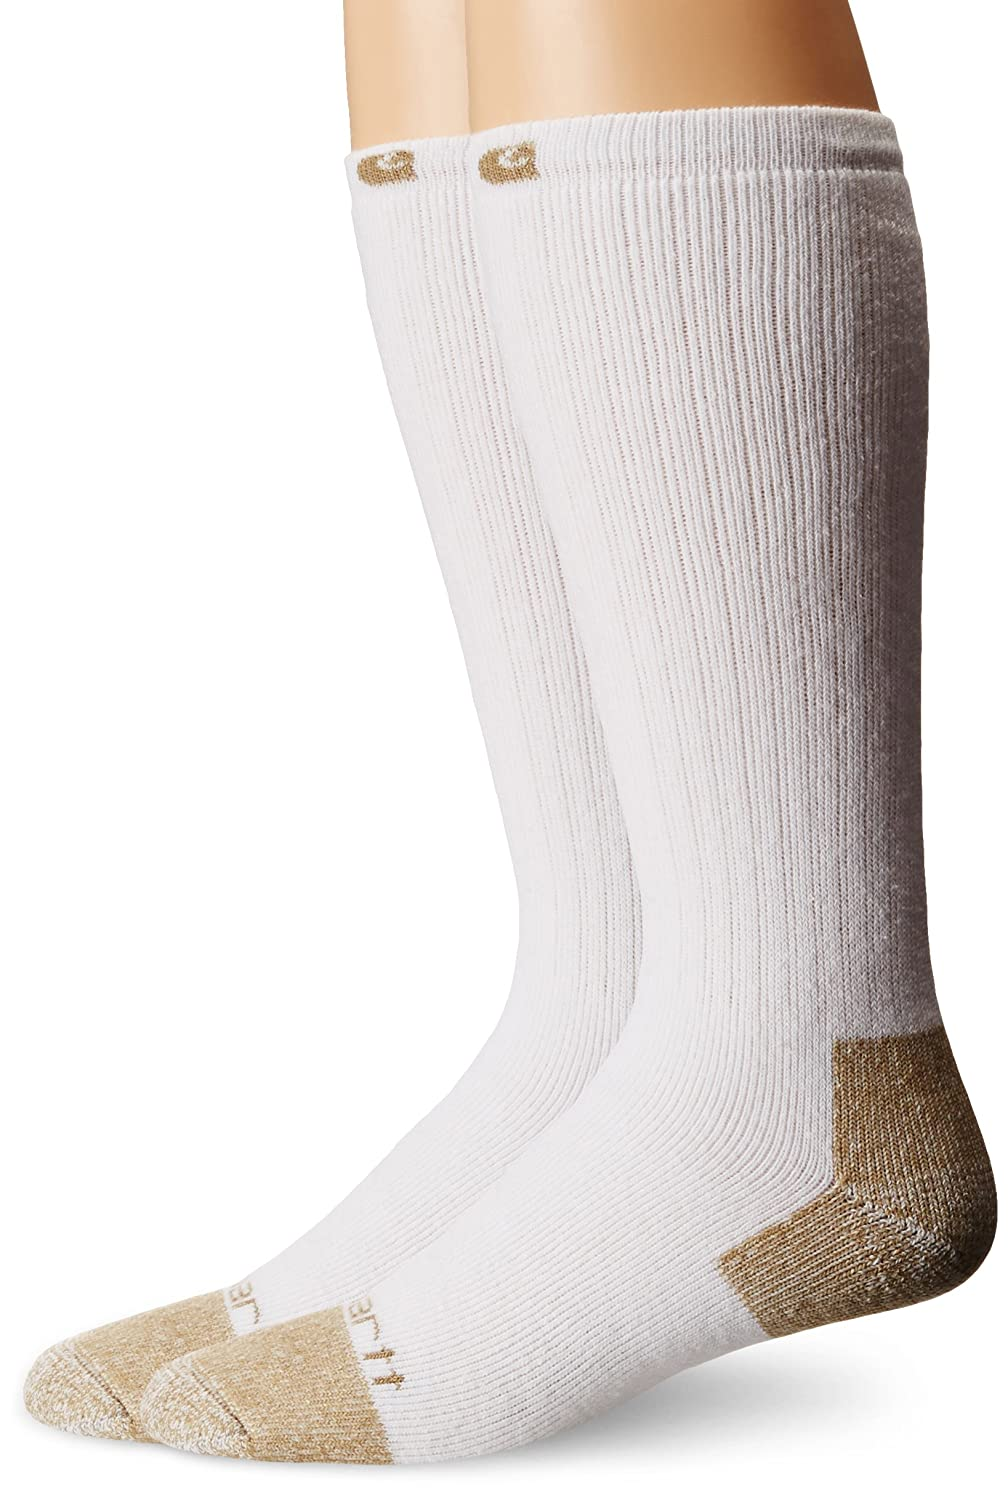 Carhartt Men's Full Cushion Steel-Toe Cotton Work Boot Sock 2-Pack Carhartt Socks A555-2